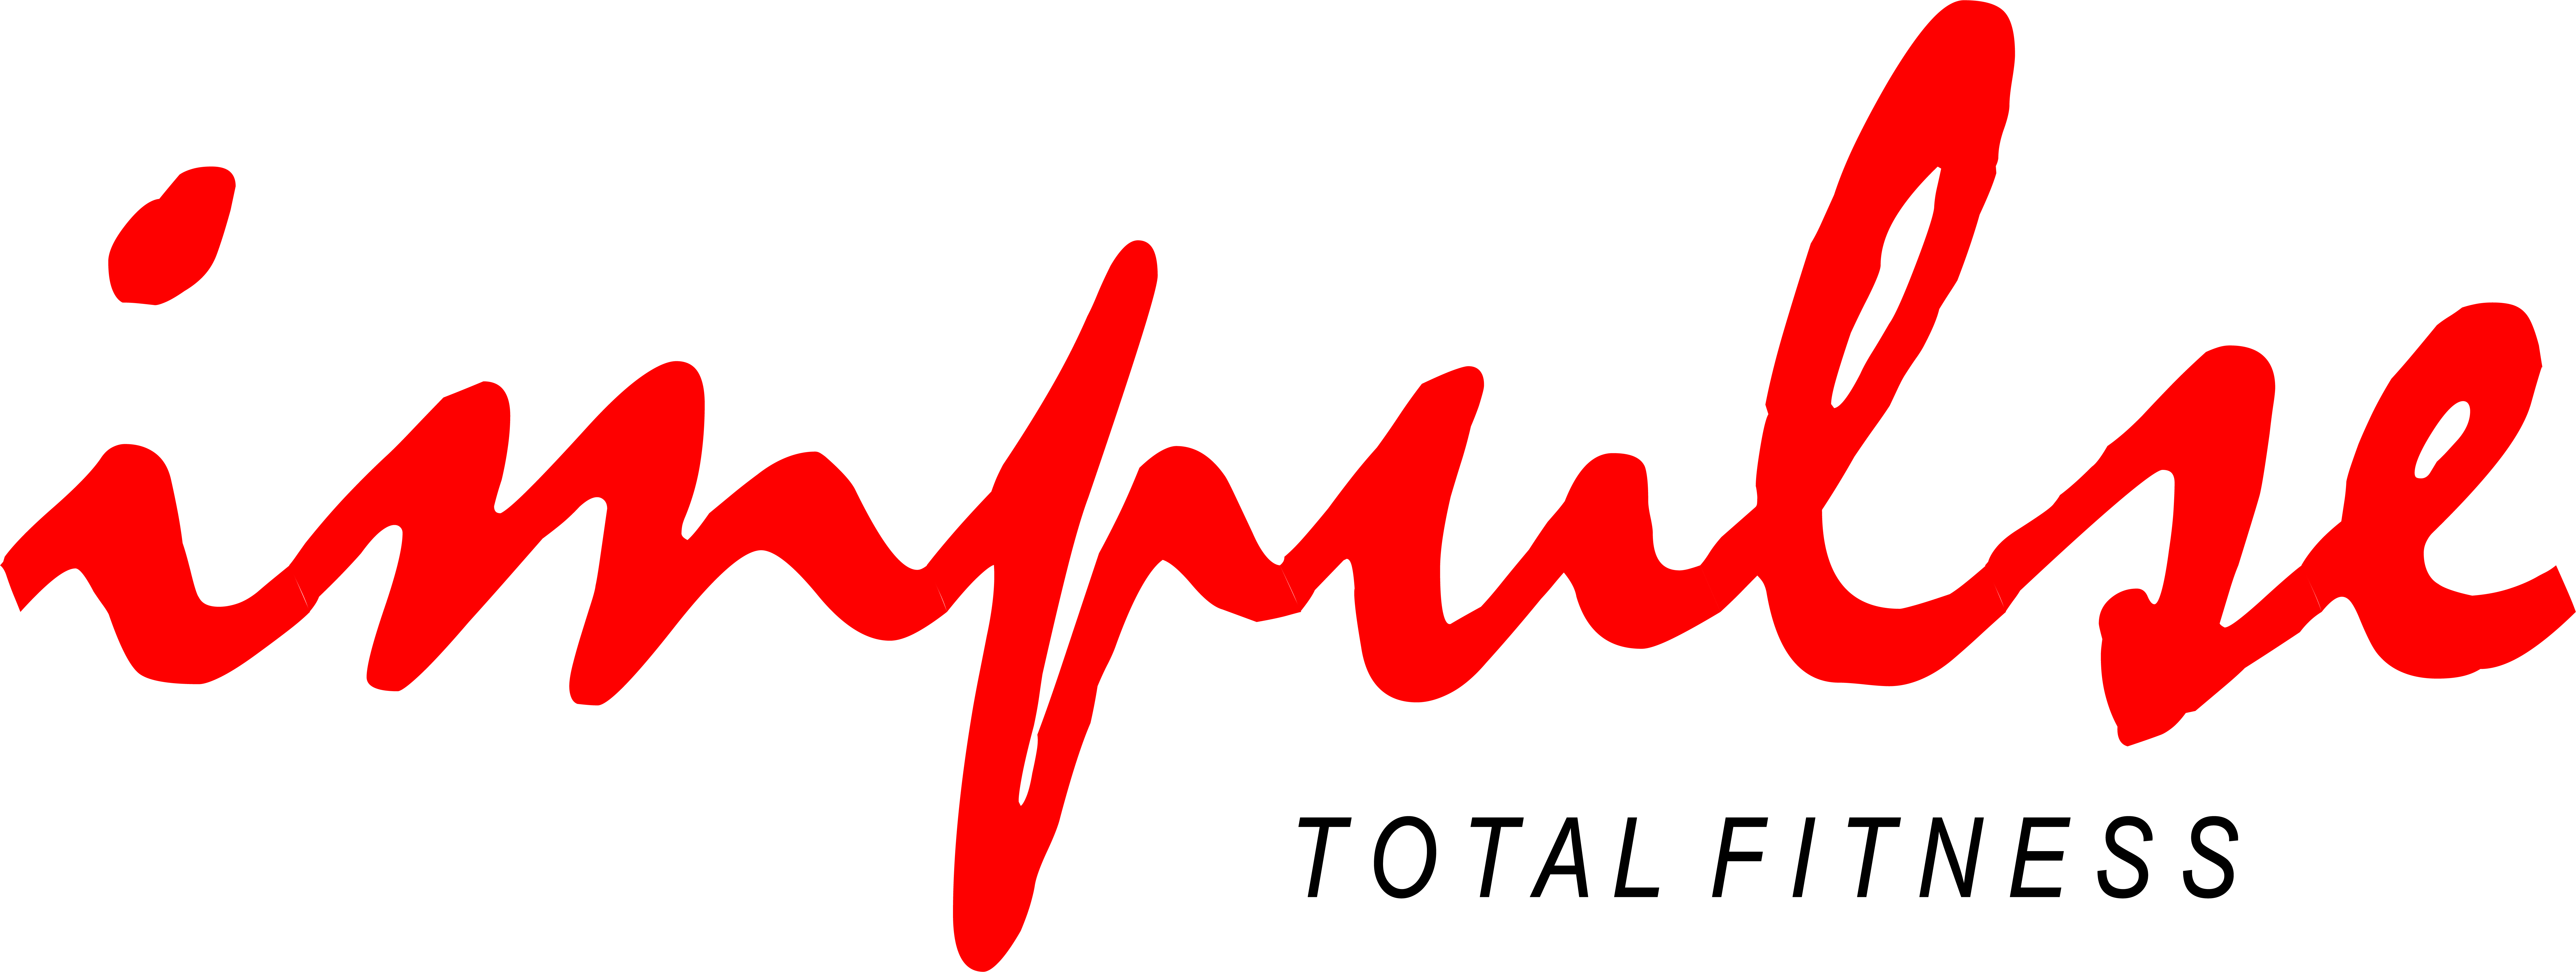 logo de Impulse Total Fitness